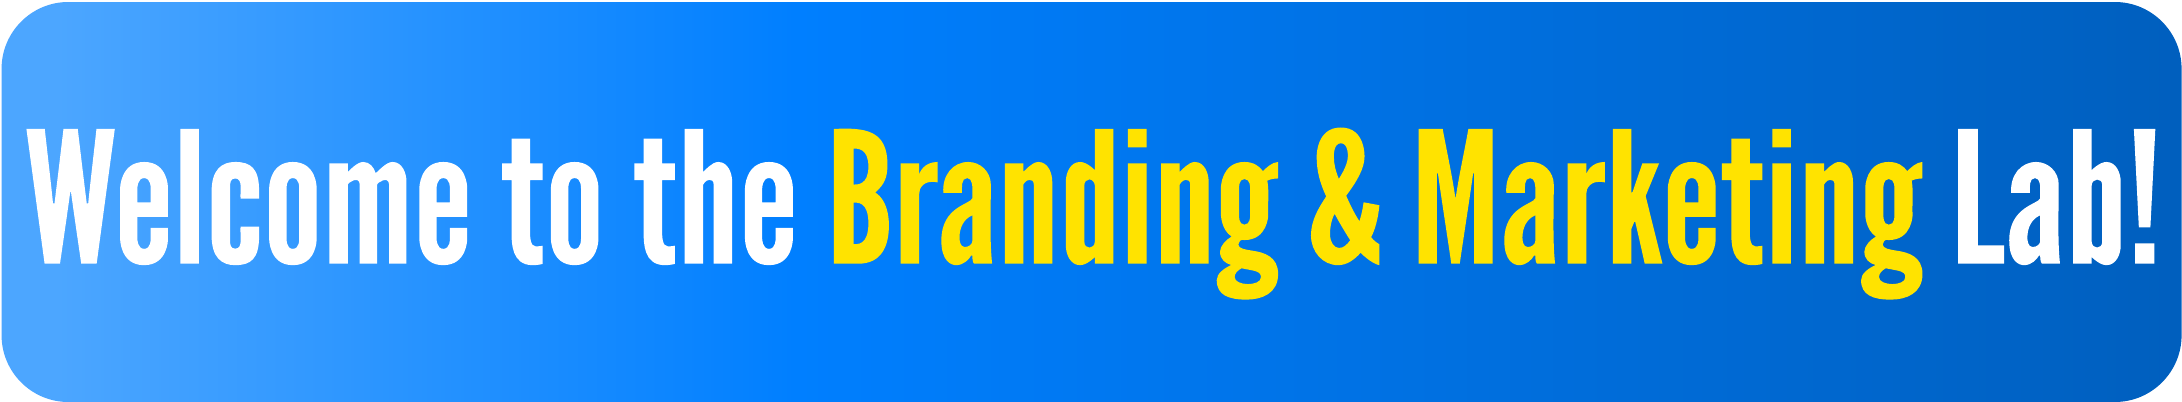 Welcome to the Branding & Marketing Lab!